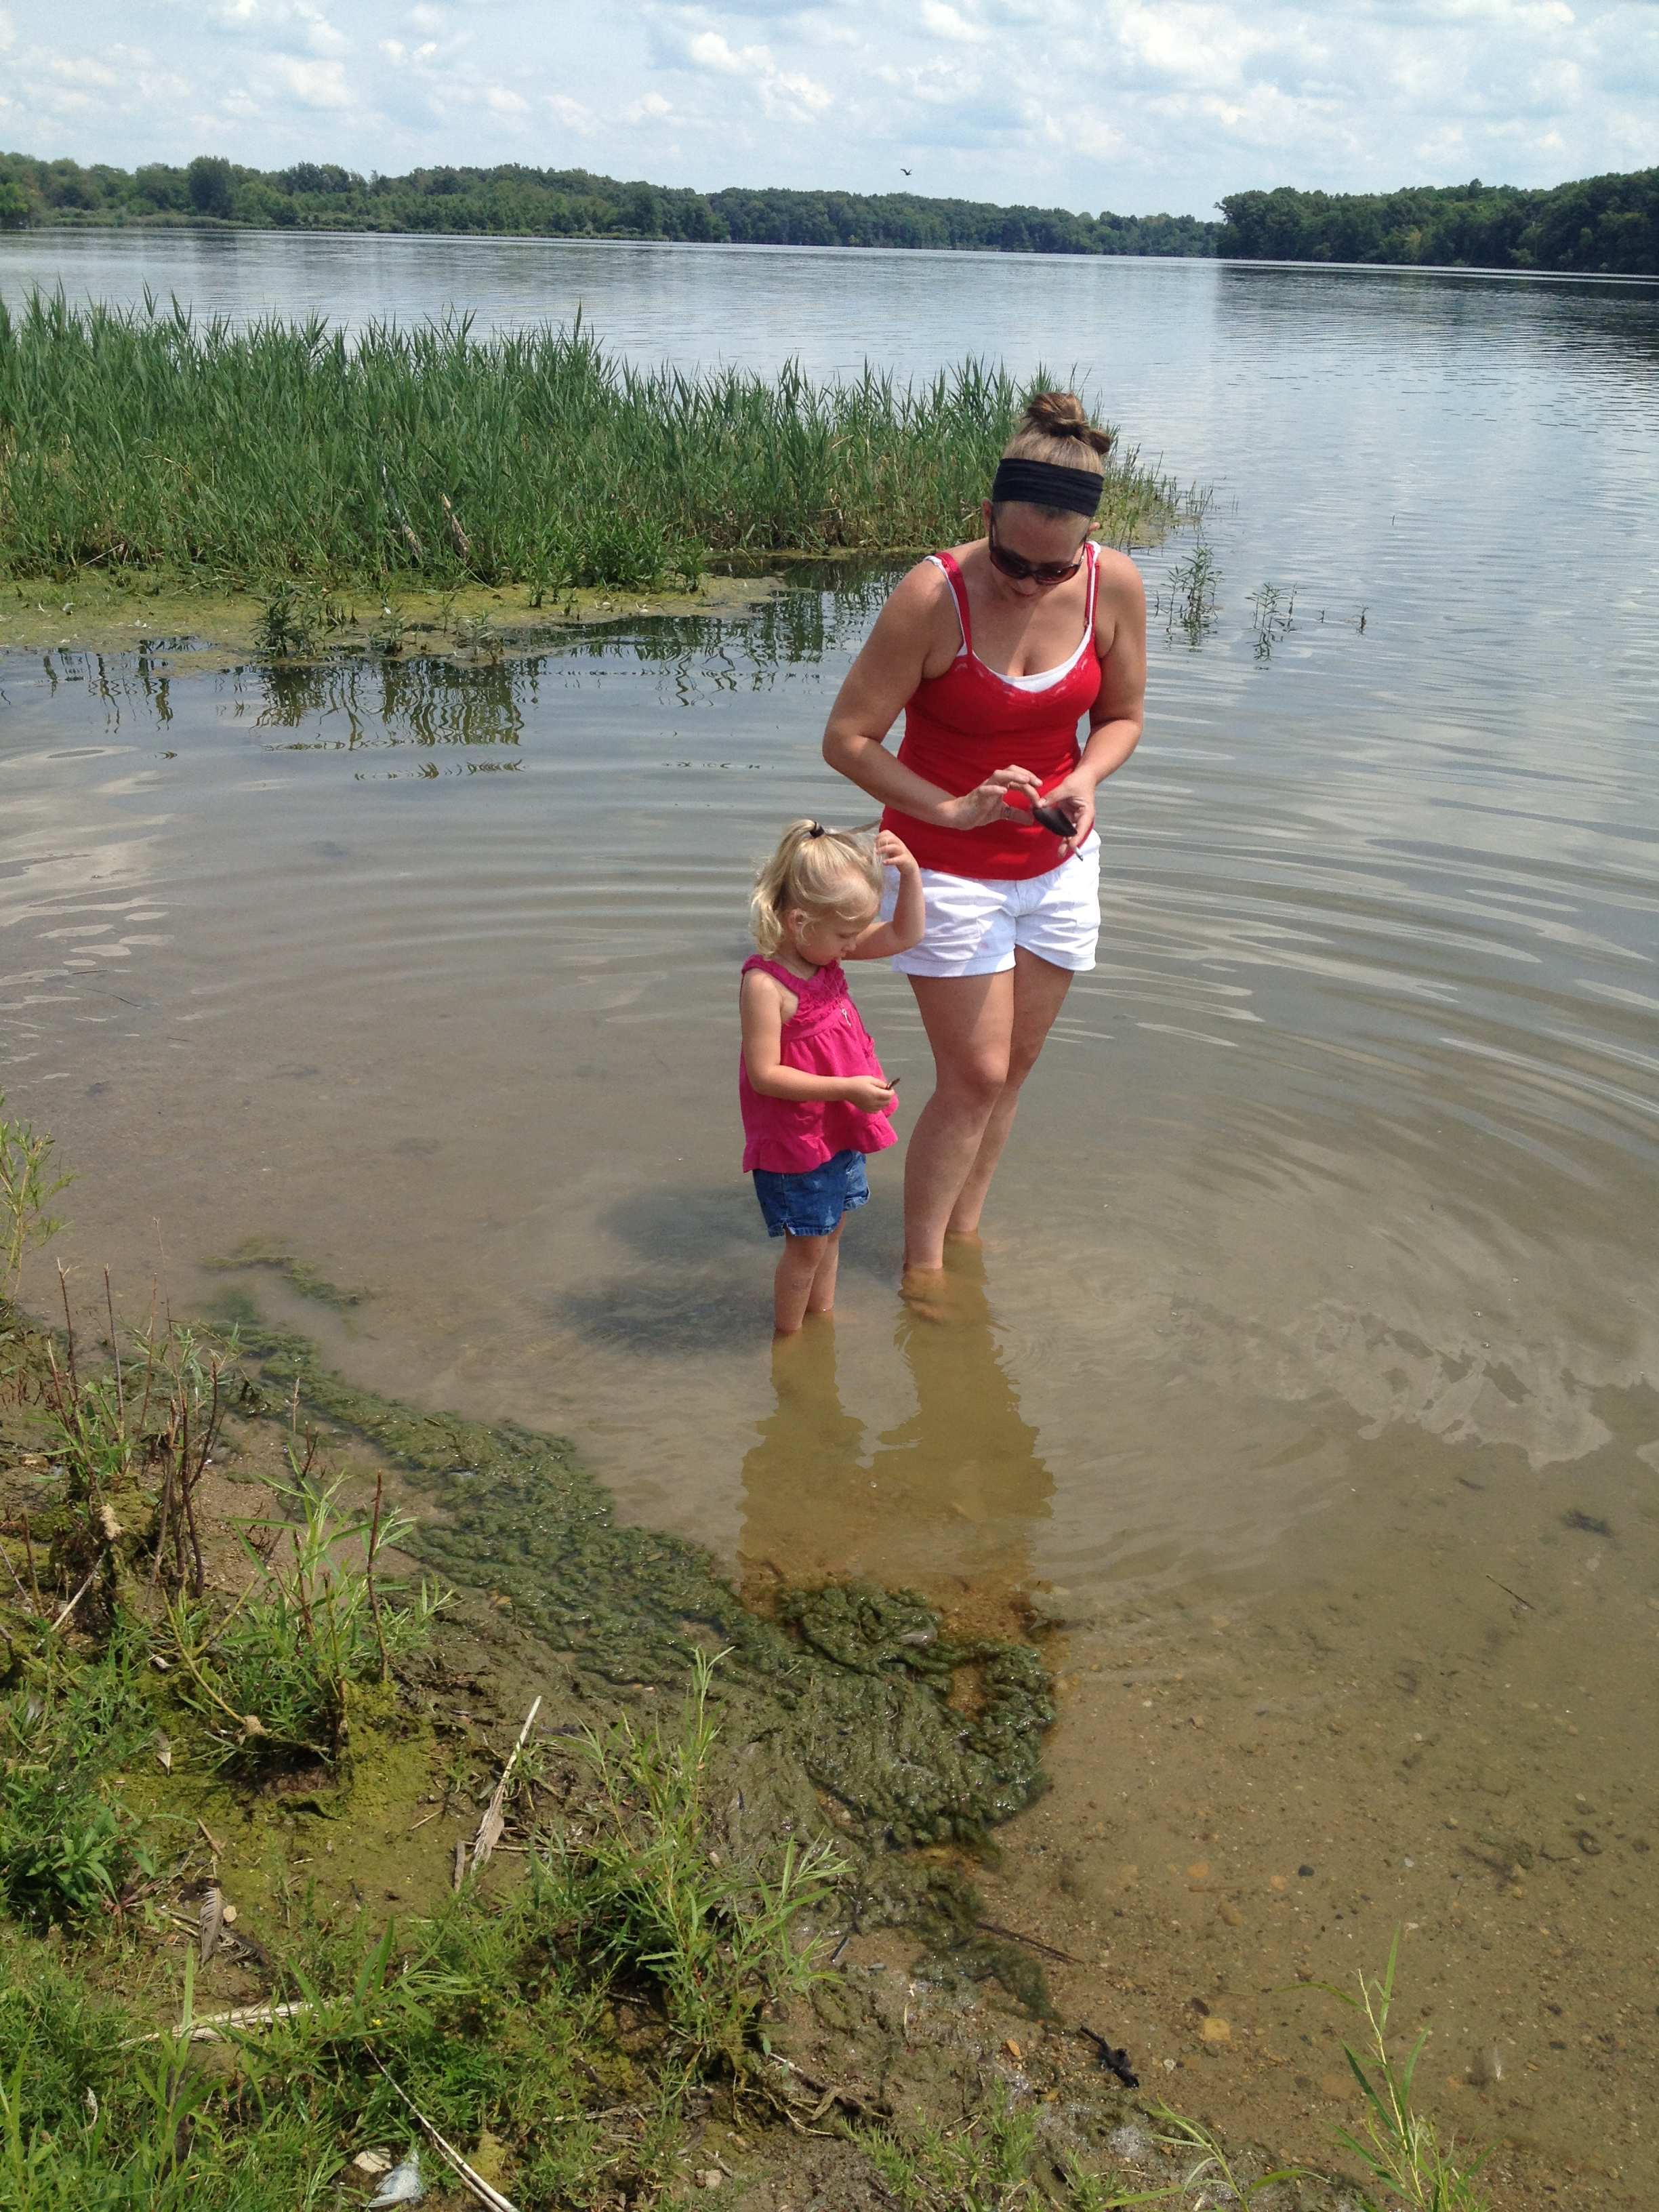 Momma and small child playing at the edge of a beautiful lake! Baptised in Muddy Water!